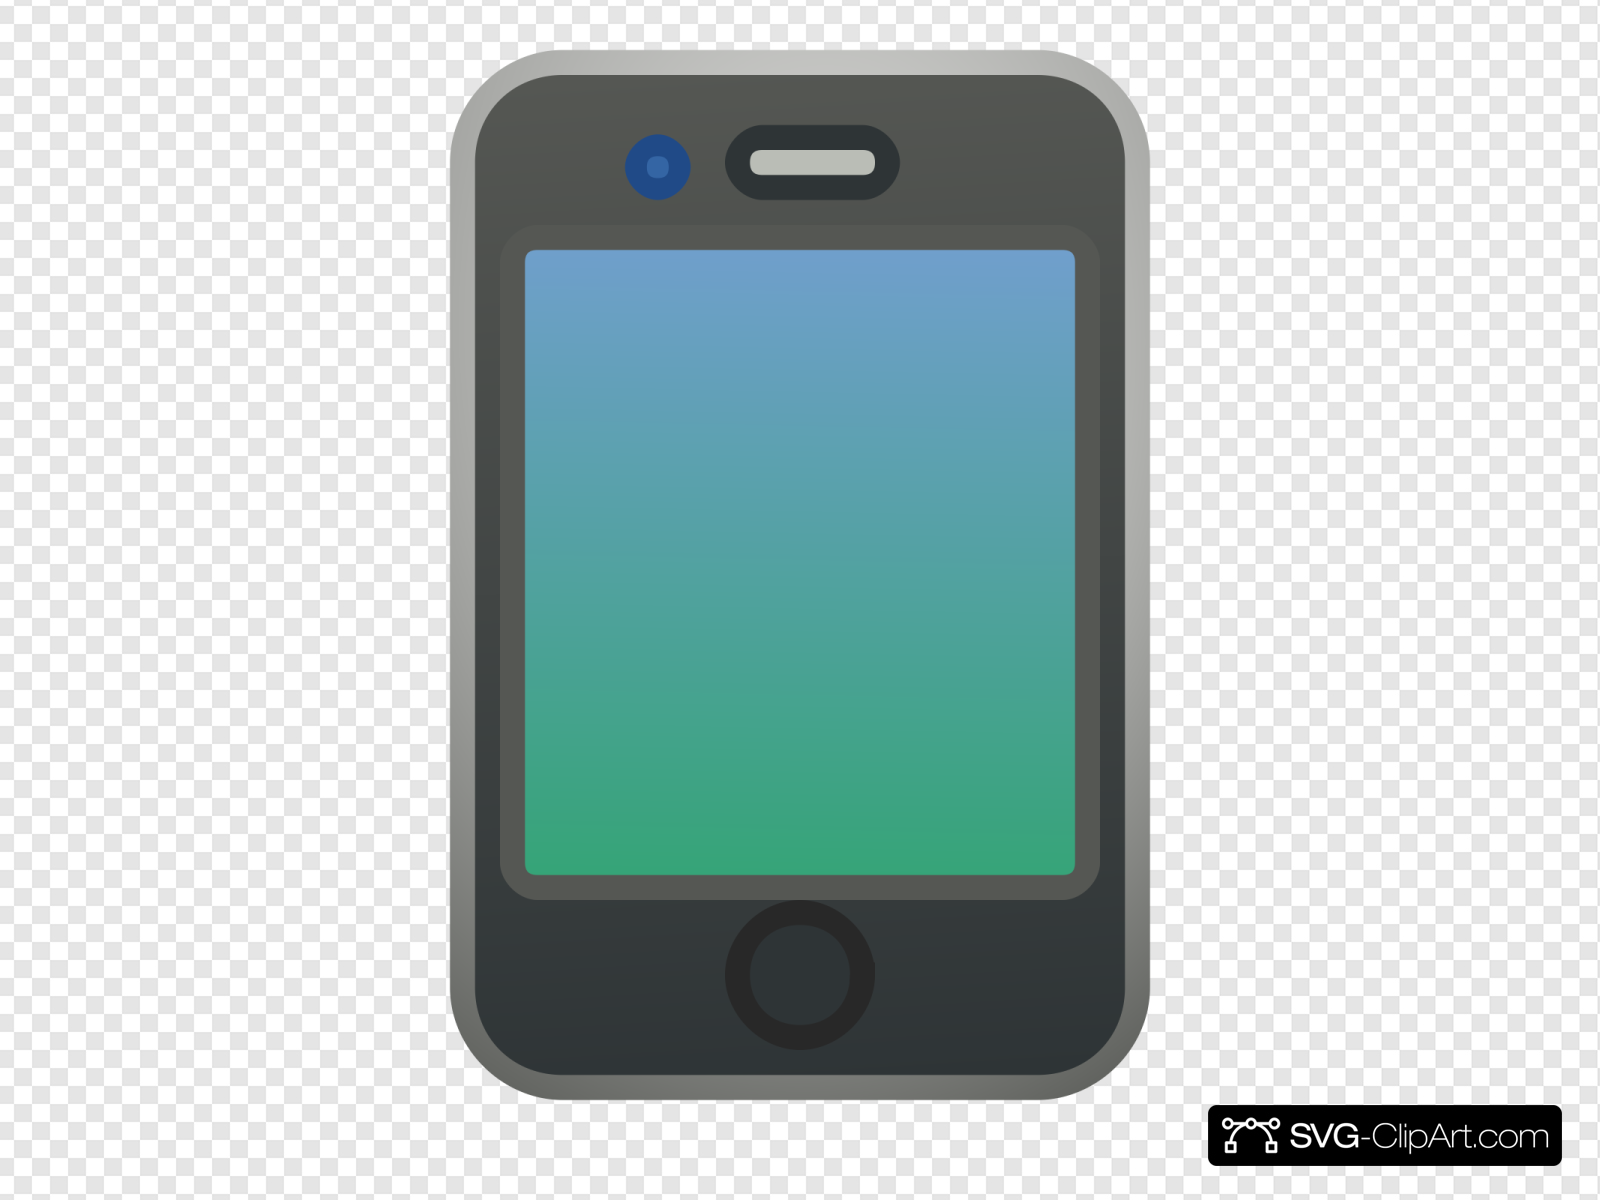 Tango Icon For Iphone 4 Clip art, Icon and SVG.